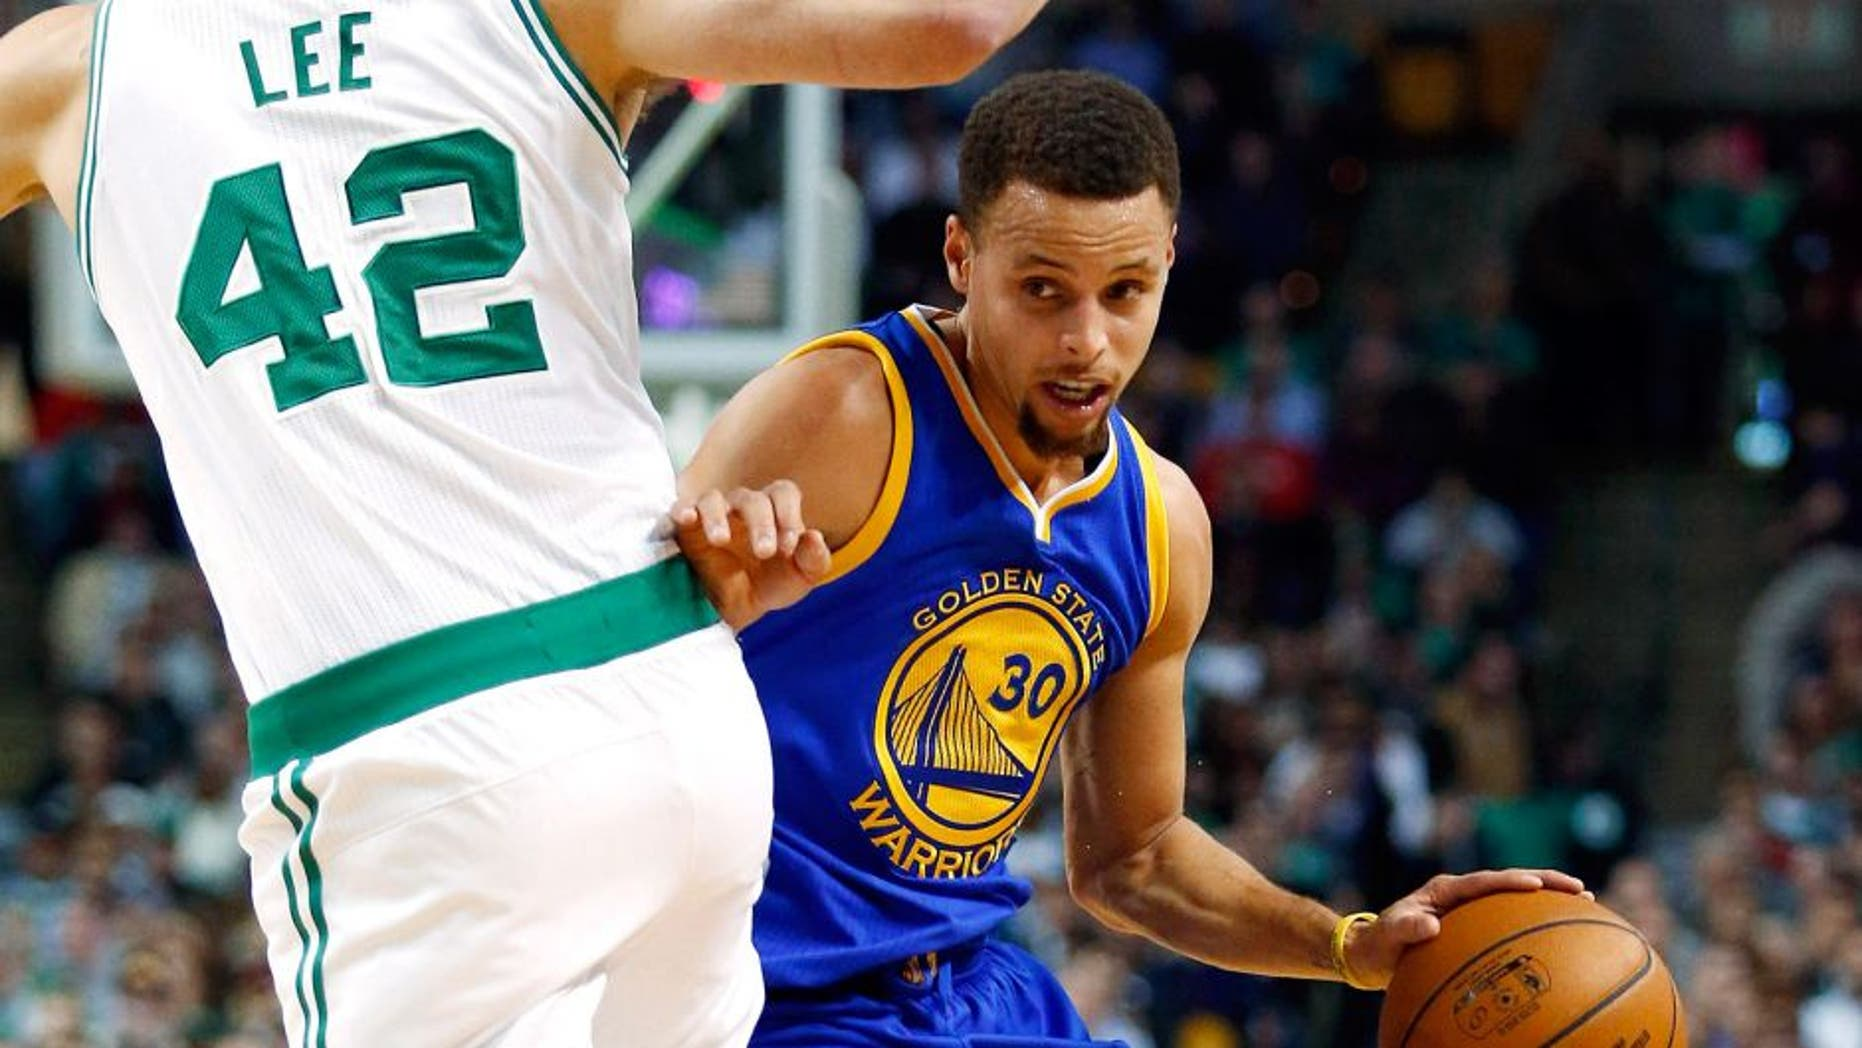 Dec 11, 2015; Boston, MA, USA; Golden State Warriors guard Stephen Curry (30) tries to get around Boston Celtics forward David Lee (42) during the first half at TD Garden. Mandatory Credit: Winslow Townson-USA TODAY Sports